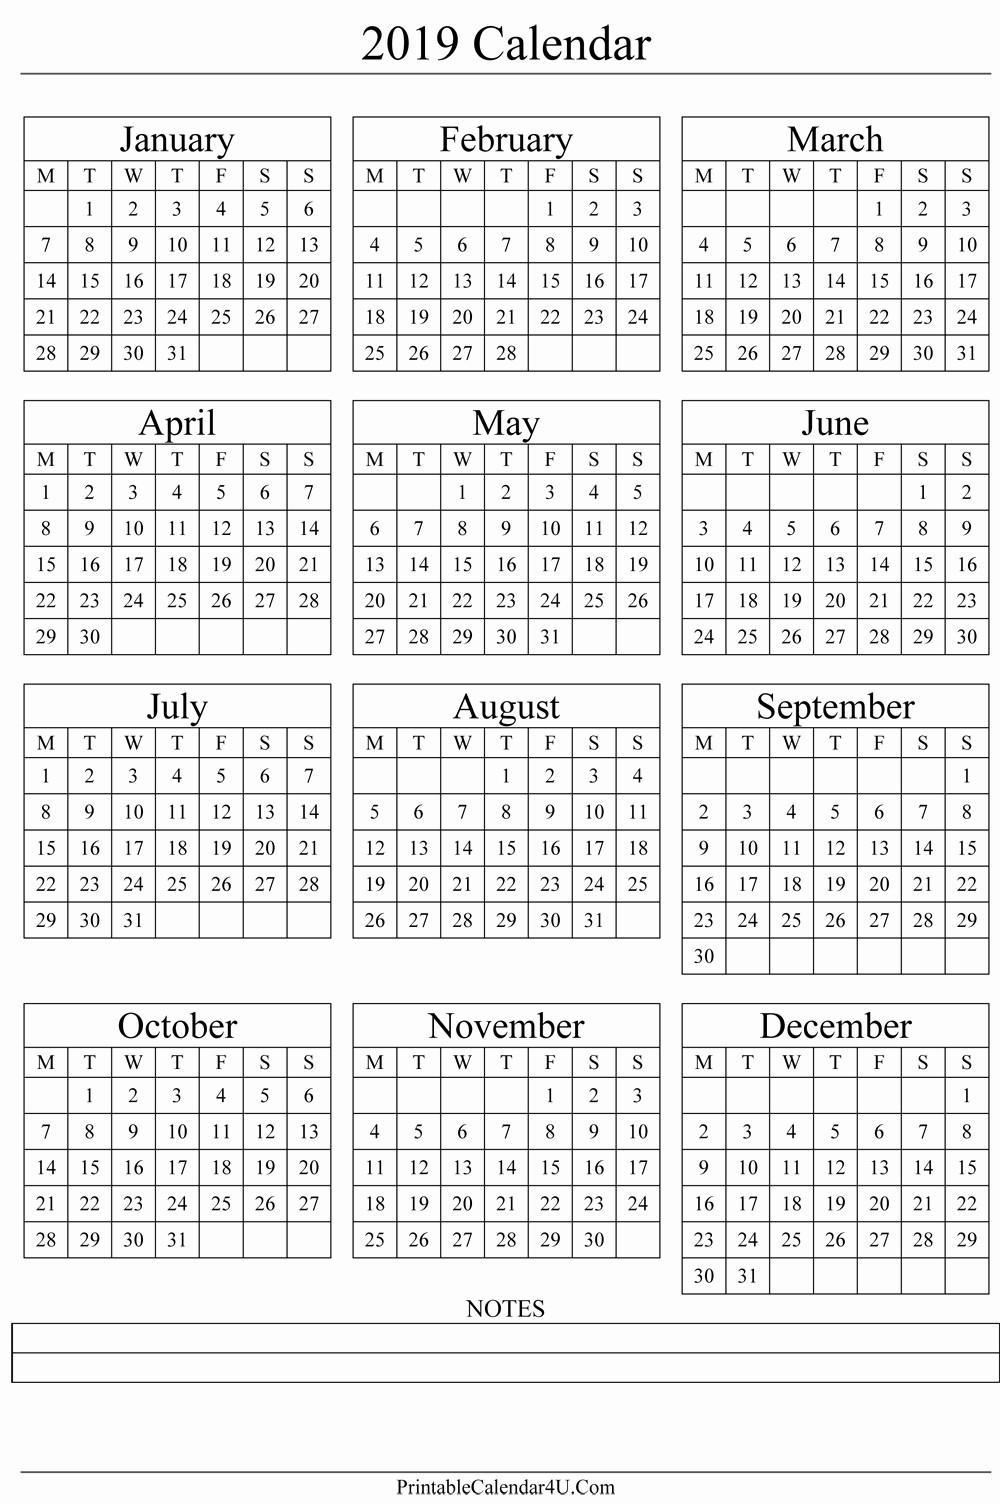 2019 Yearly Calendar One Page Fresh Annual Calendar 2019